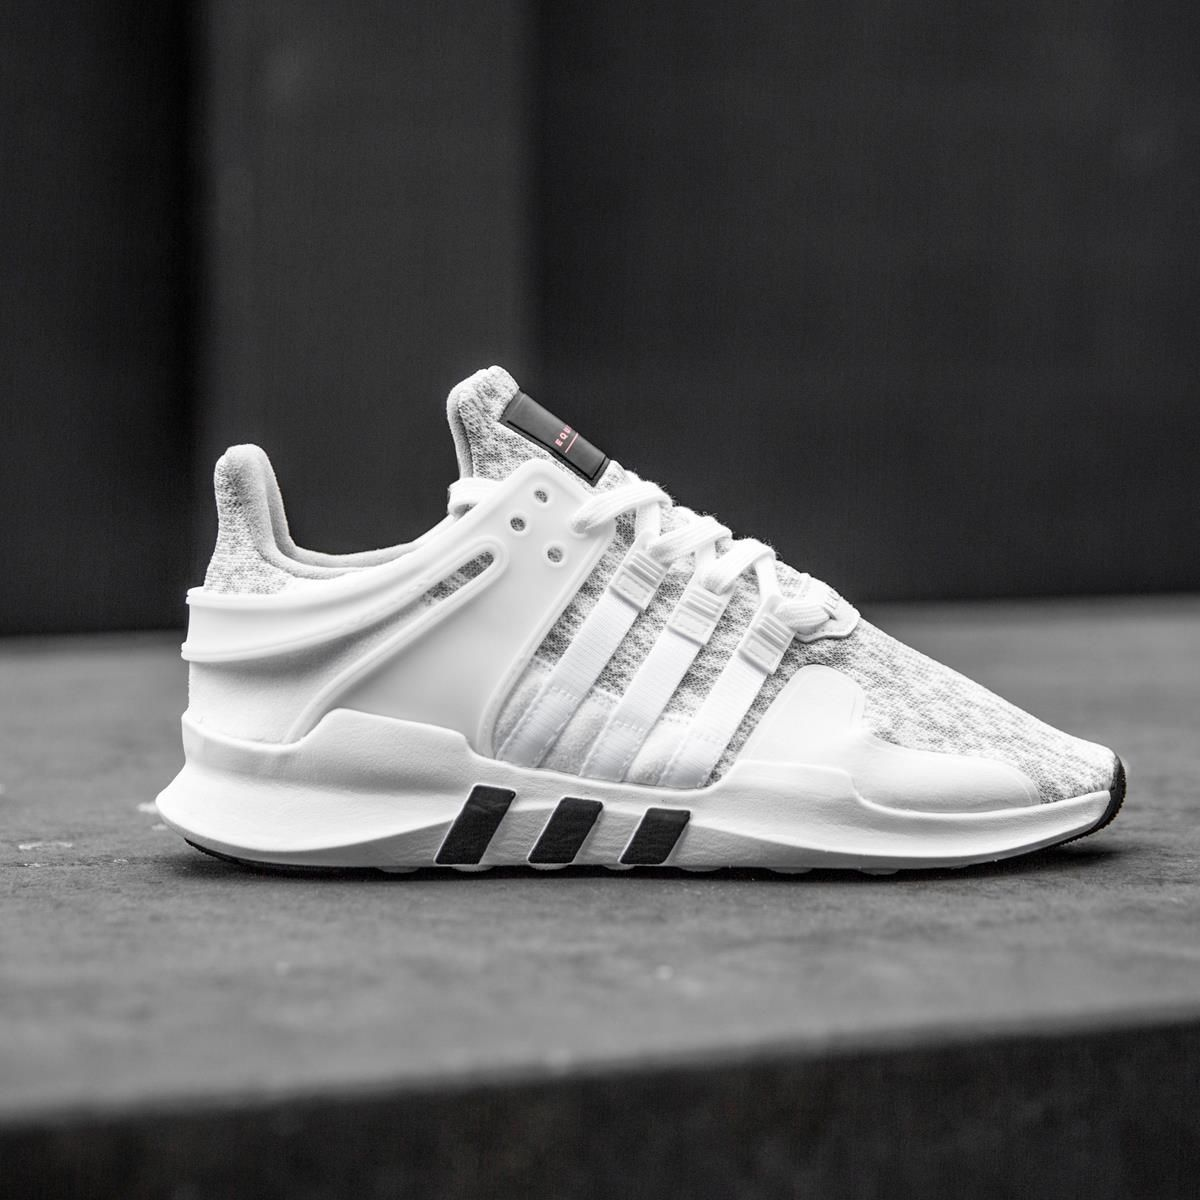 innovative design d83a3 b6b56 adidas EQT Support ADV Adidas Sneaker Nmd, Adidas Sneakers, Shoes Sneakers,  Nike Tanjun